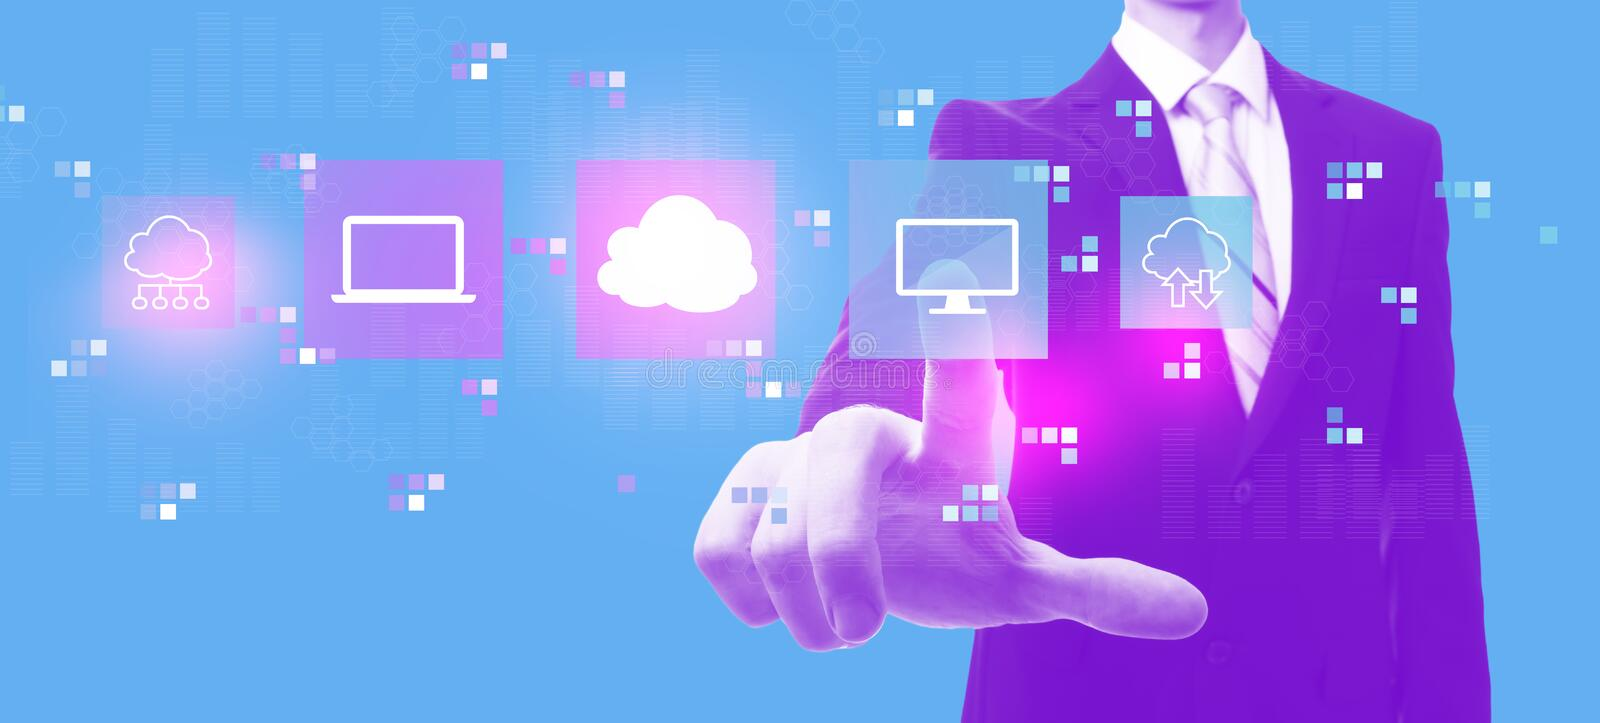 Cloud computing with businessman in duotone royalty free illustration